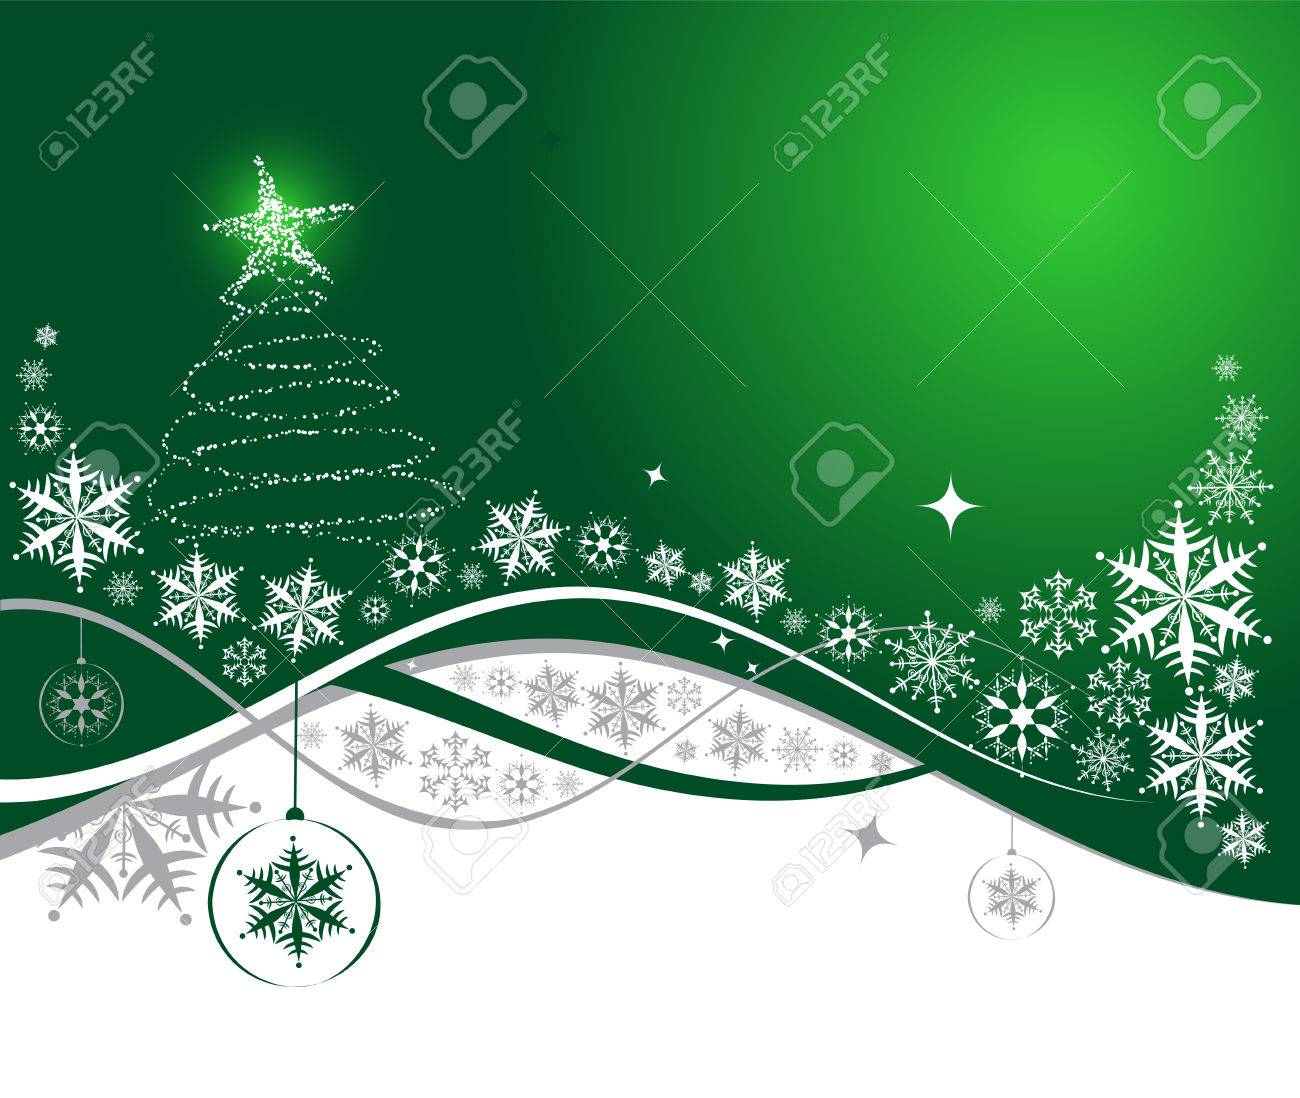 Christmas holiday background, vector illustration for your design - 5737020